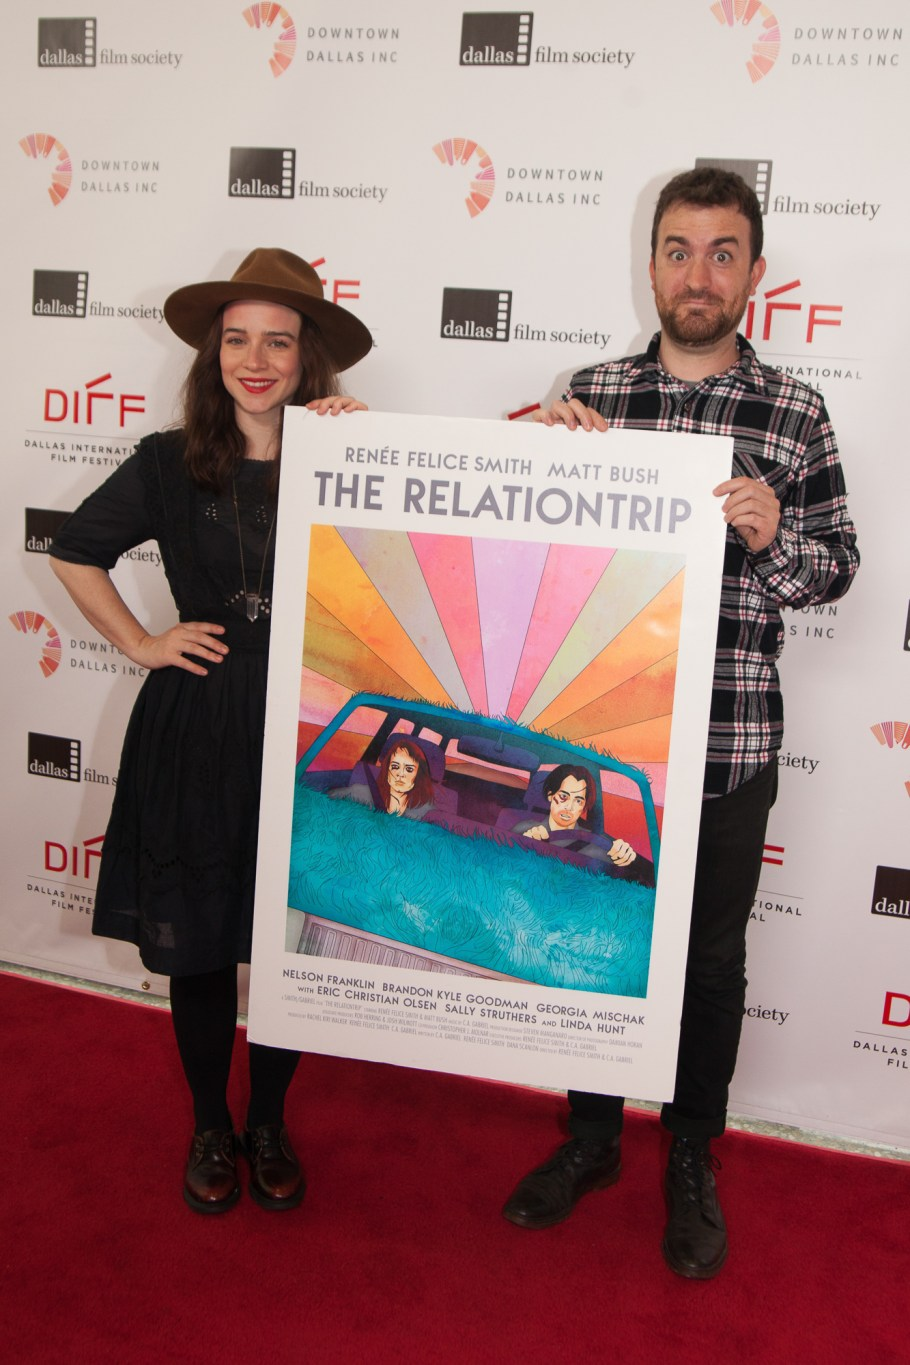 Renee' Felice Smith - Director, C. A. Gabriel - Director,  THE RELATIONSHIP